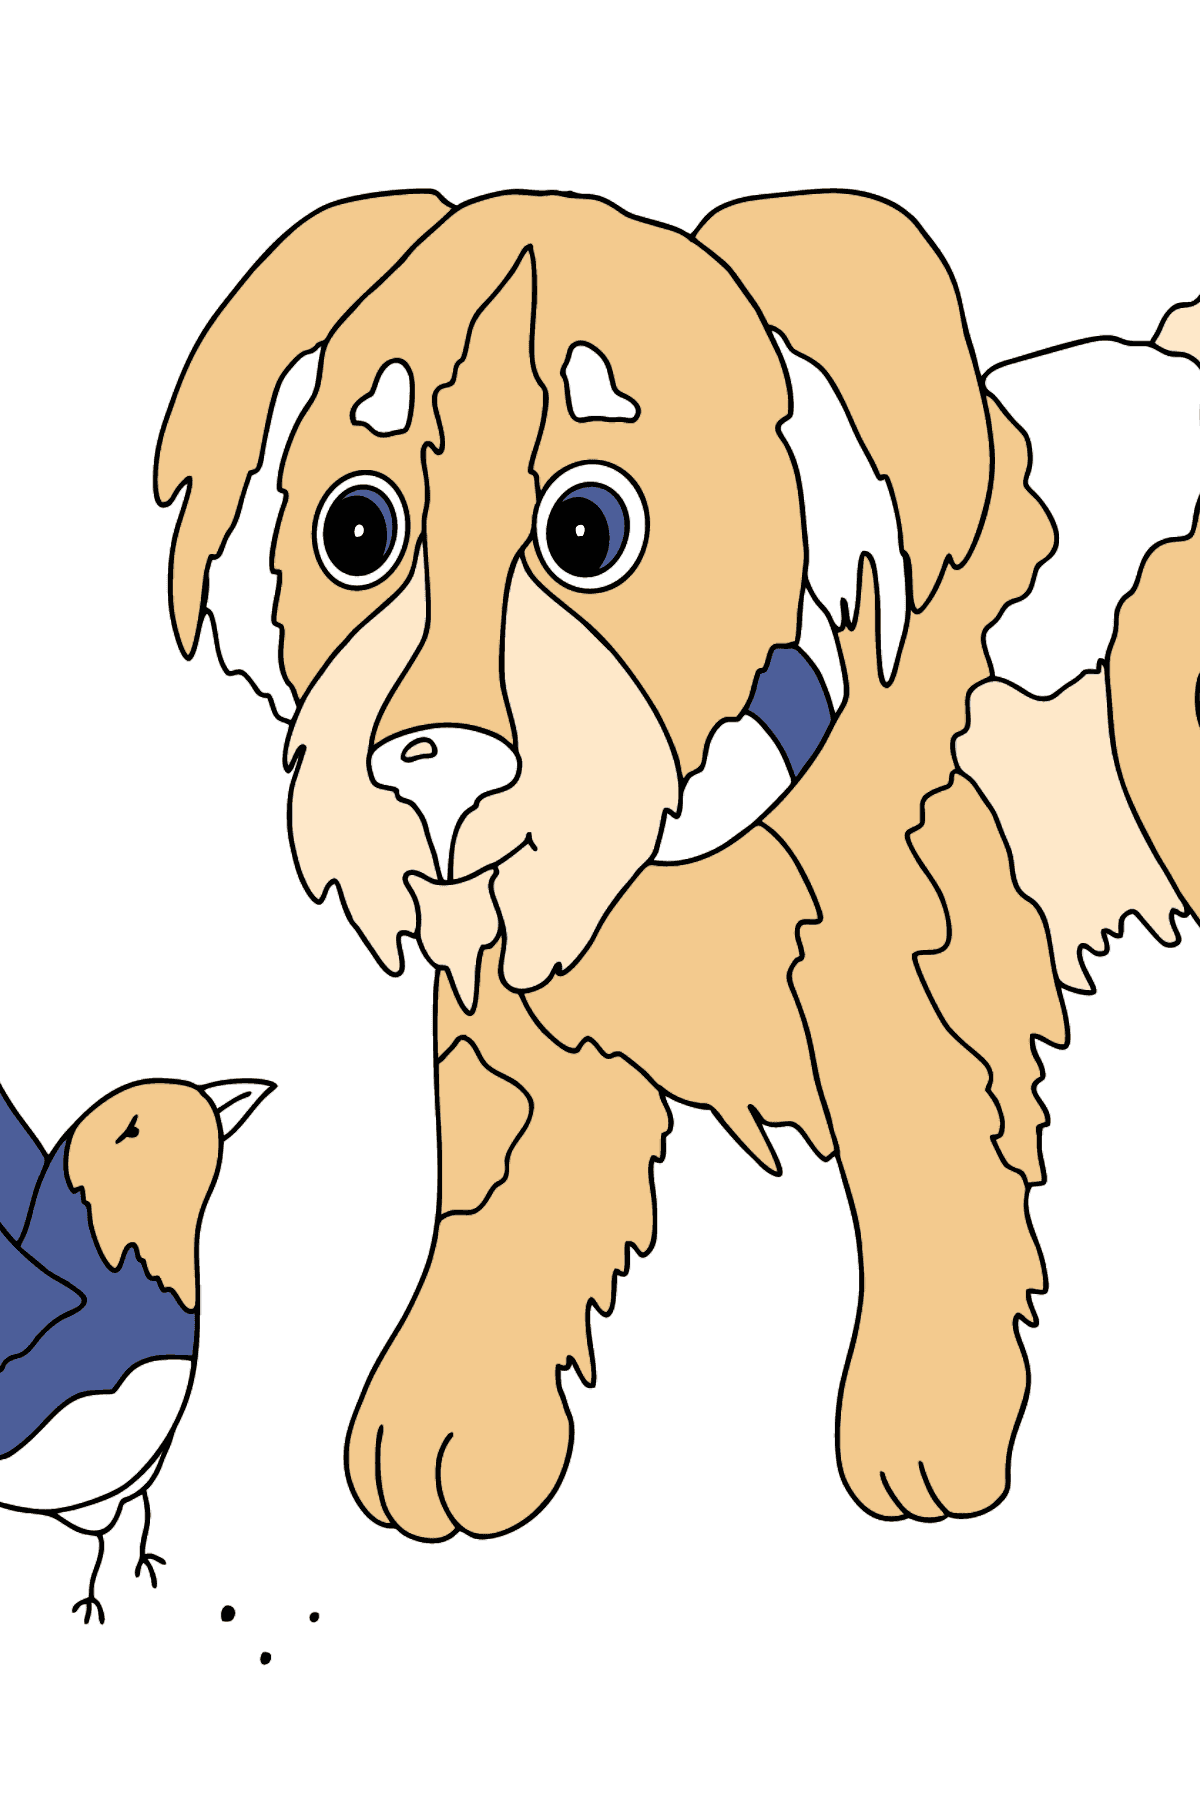 Coloring Page - A Dog is Talking to a Bird - Coloring Pages for Kids